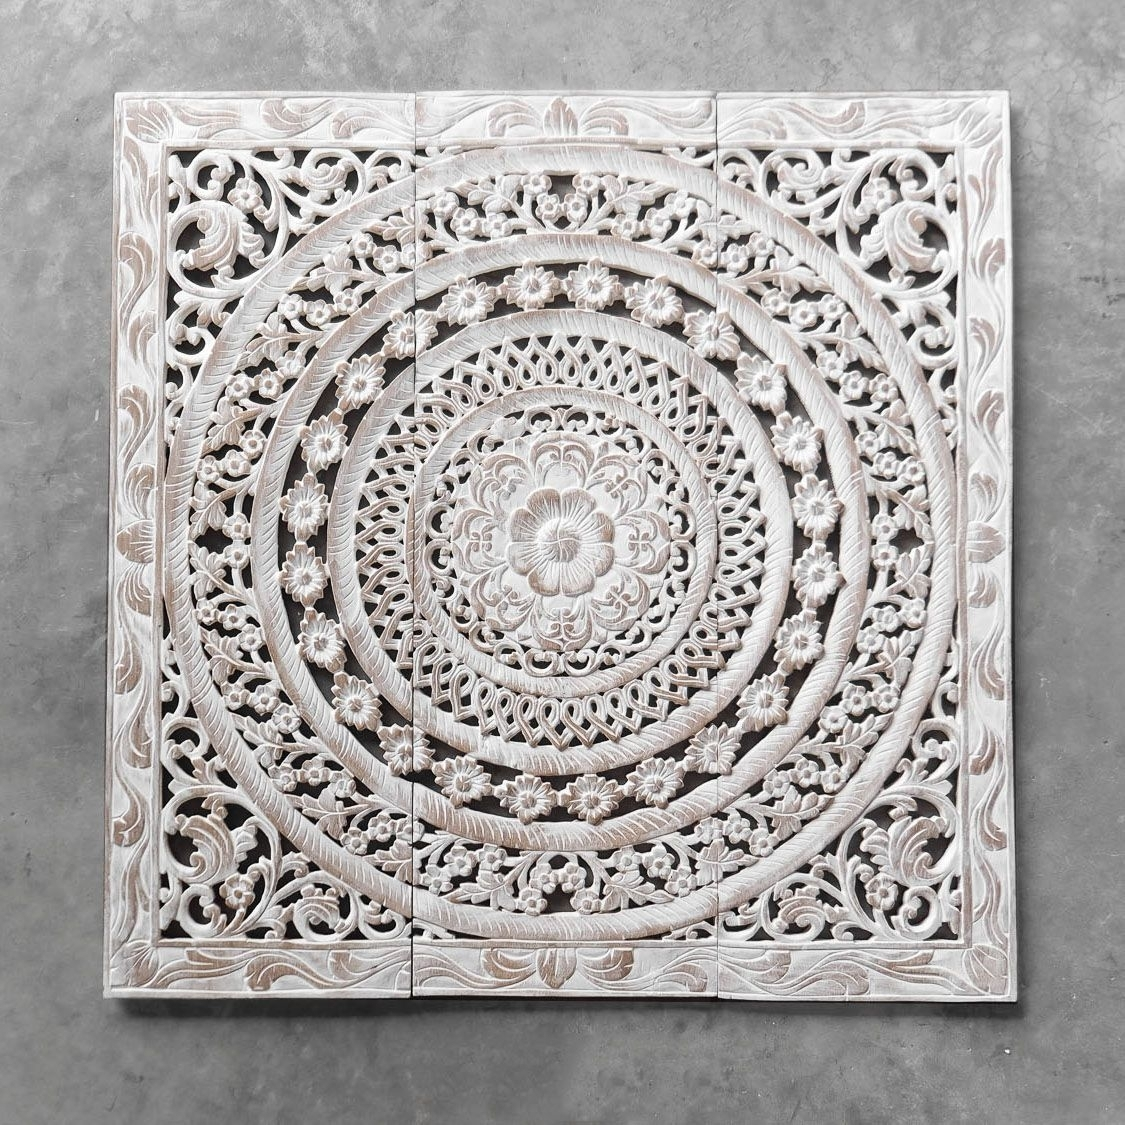 Wood Carved Wall Decor Moroccan Decent Wood Carving Wall Art Hanging Throughout Wood Carved Wall Art (Photo 1 of 20)